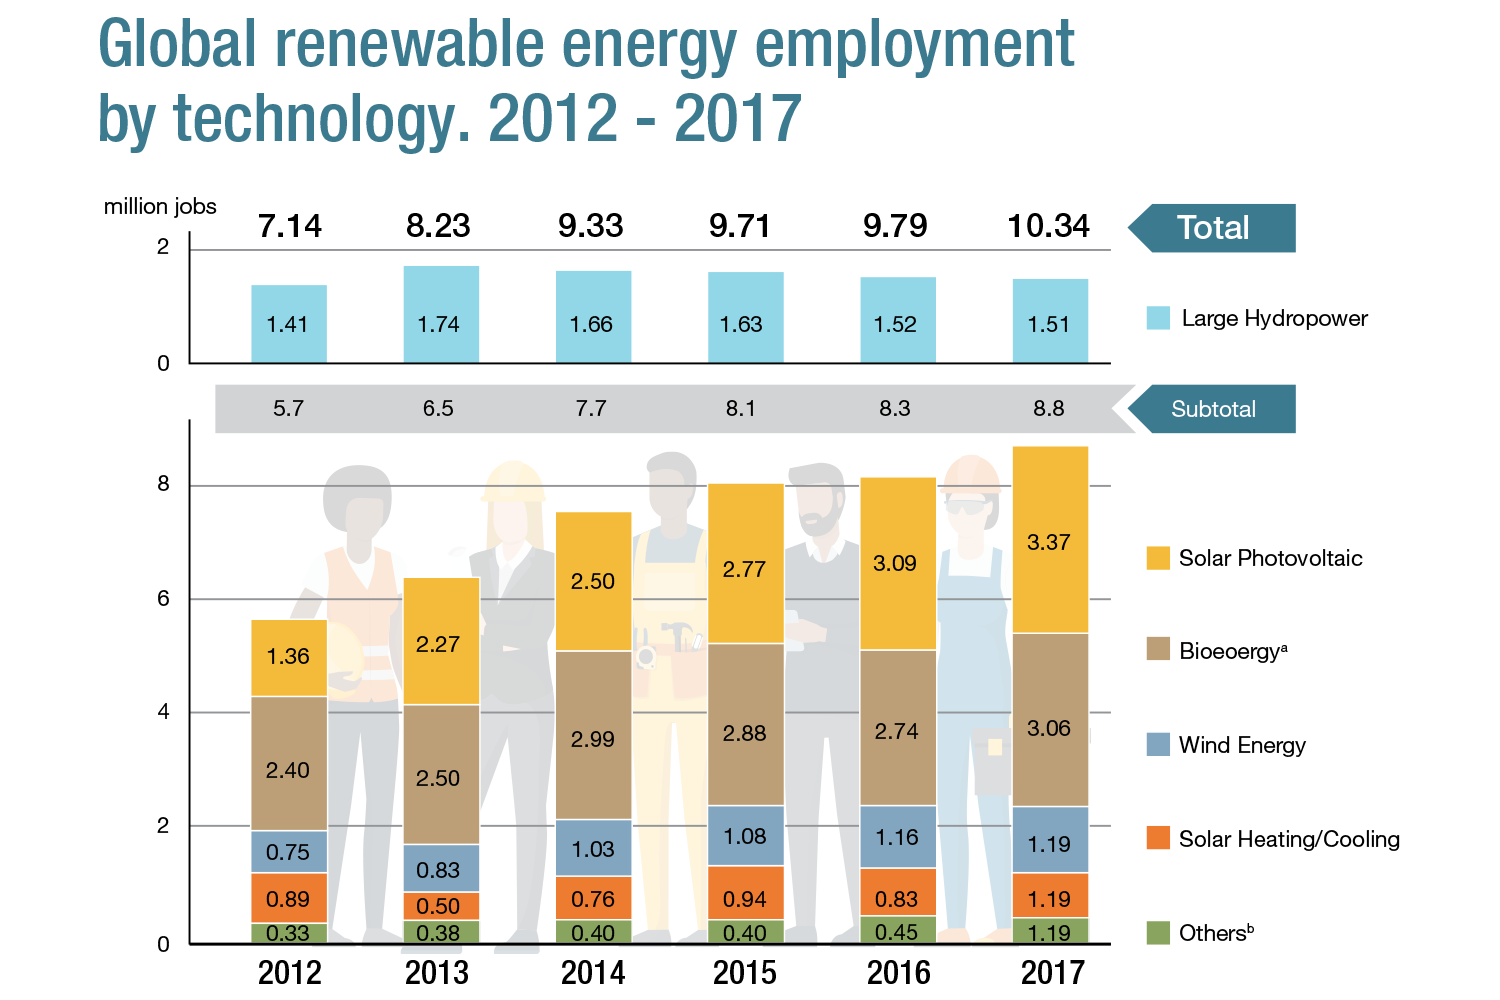 Global renewable energy employment by technology